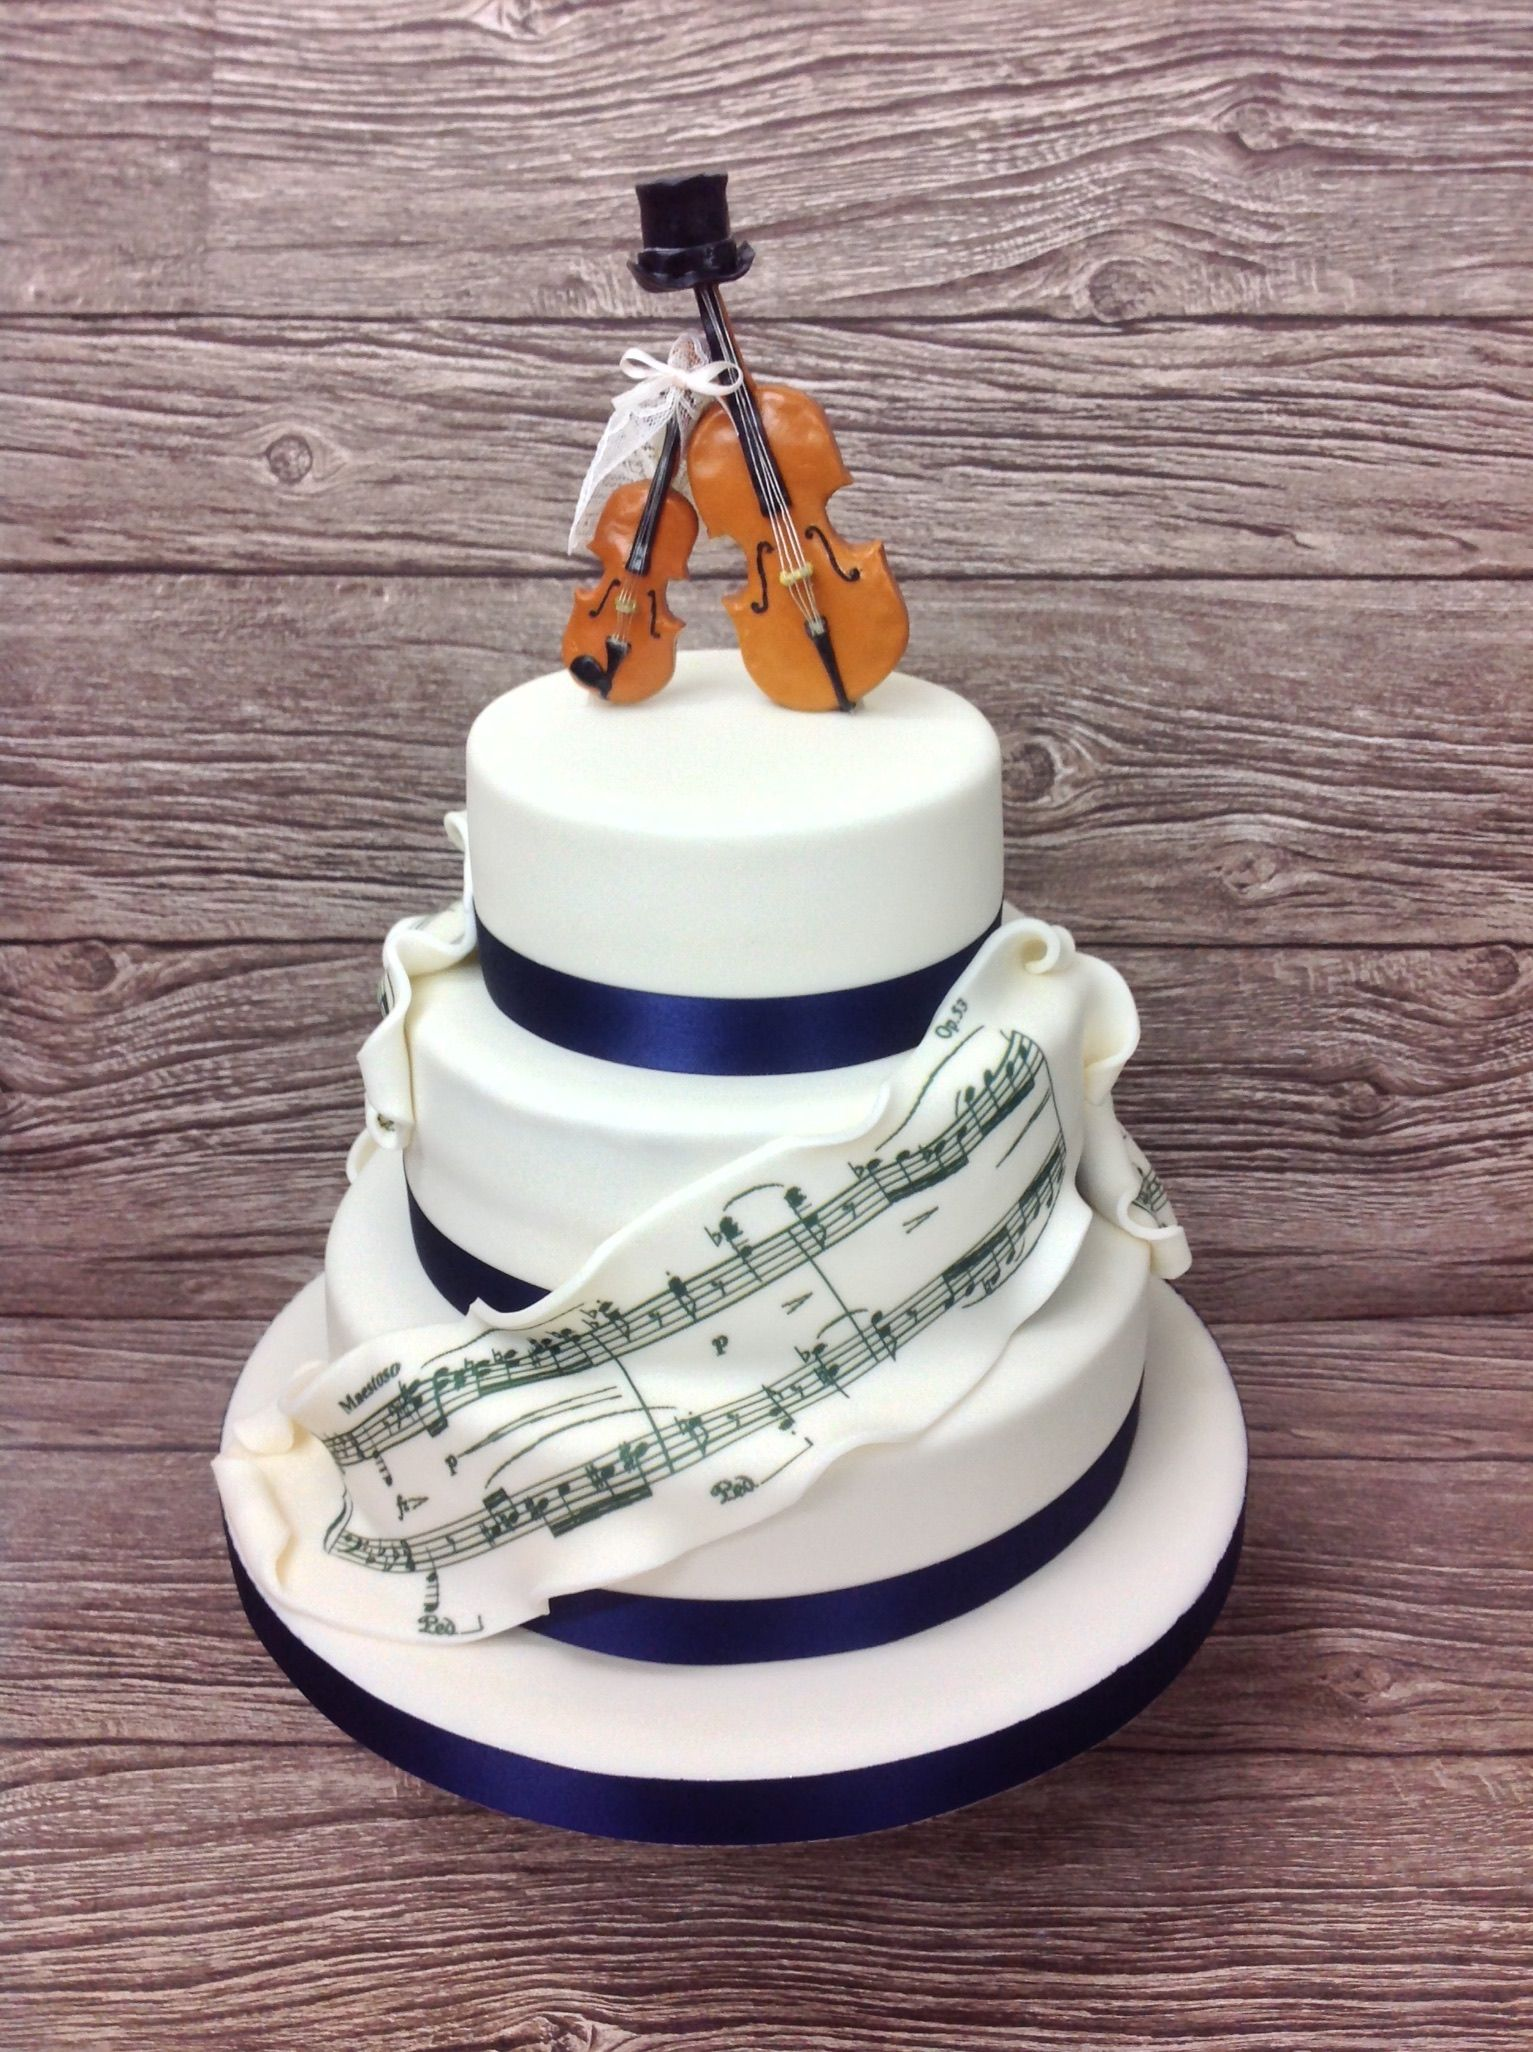 Music Themed Wedding Cake From The Cake Store London Wedding